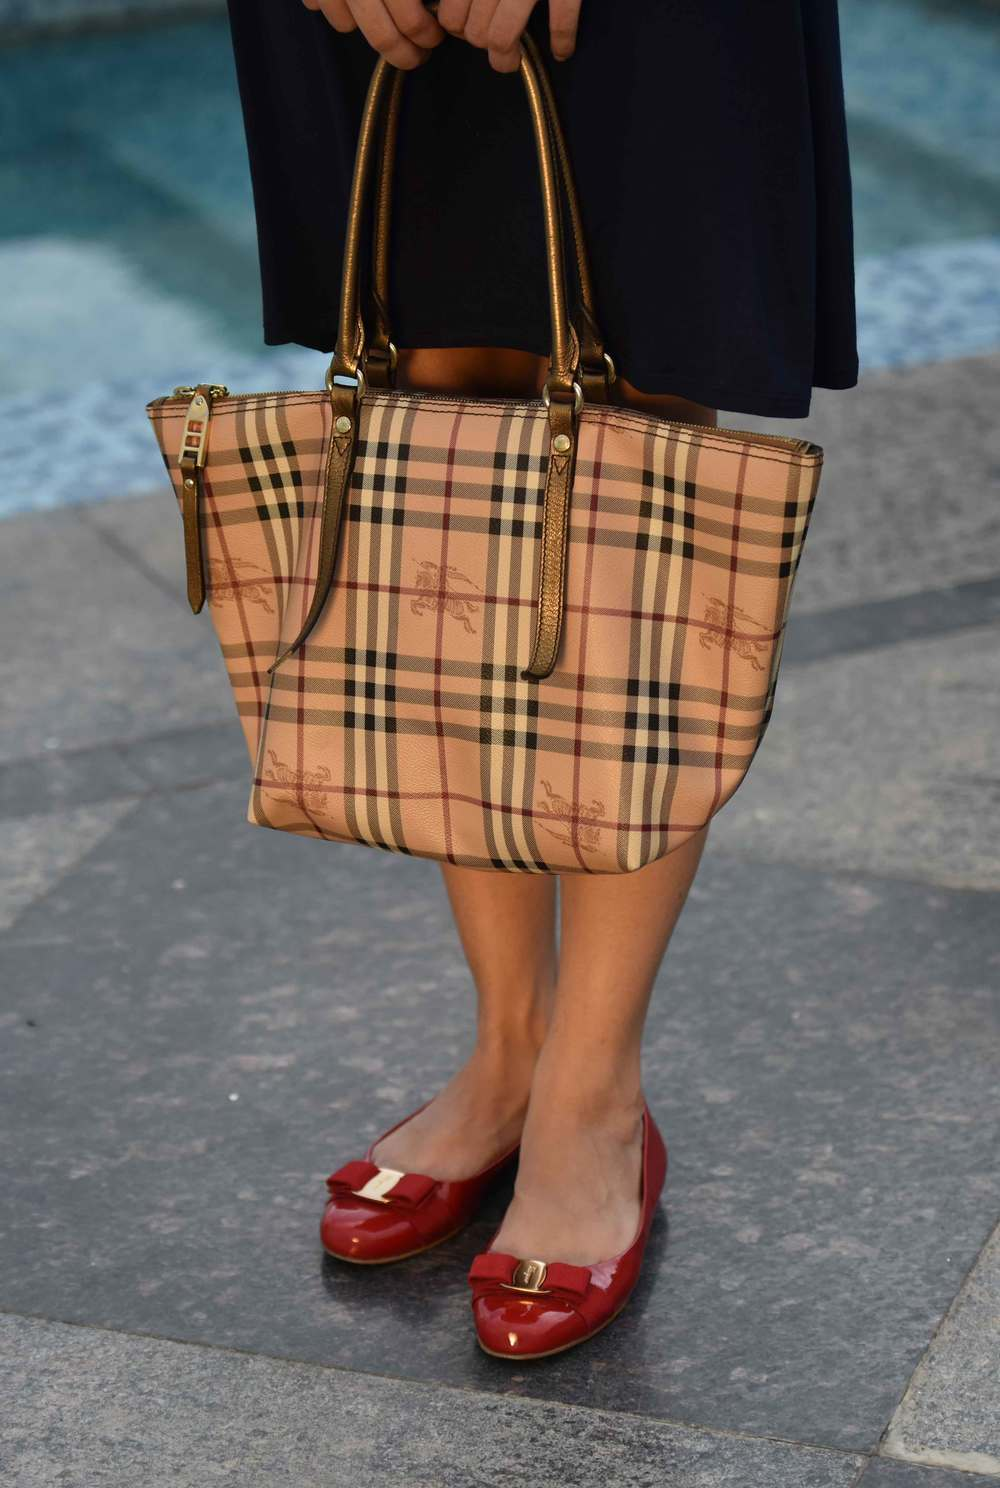 The perfect three: a Zara dress, Burberry tote and Ferragamo ballet flats. Image©gunjanvirk